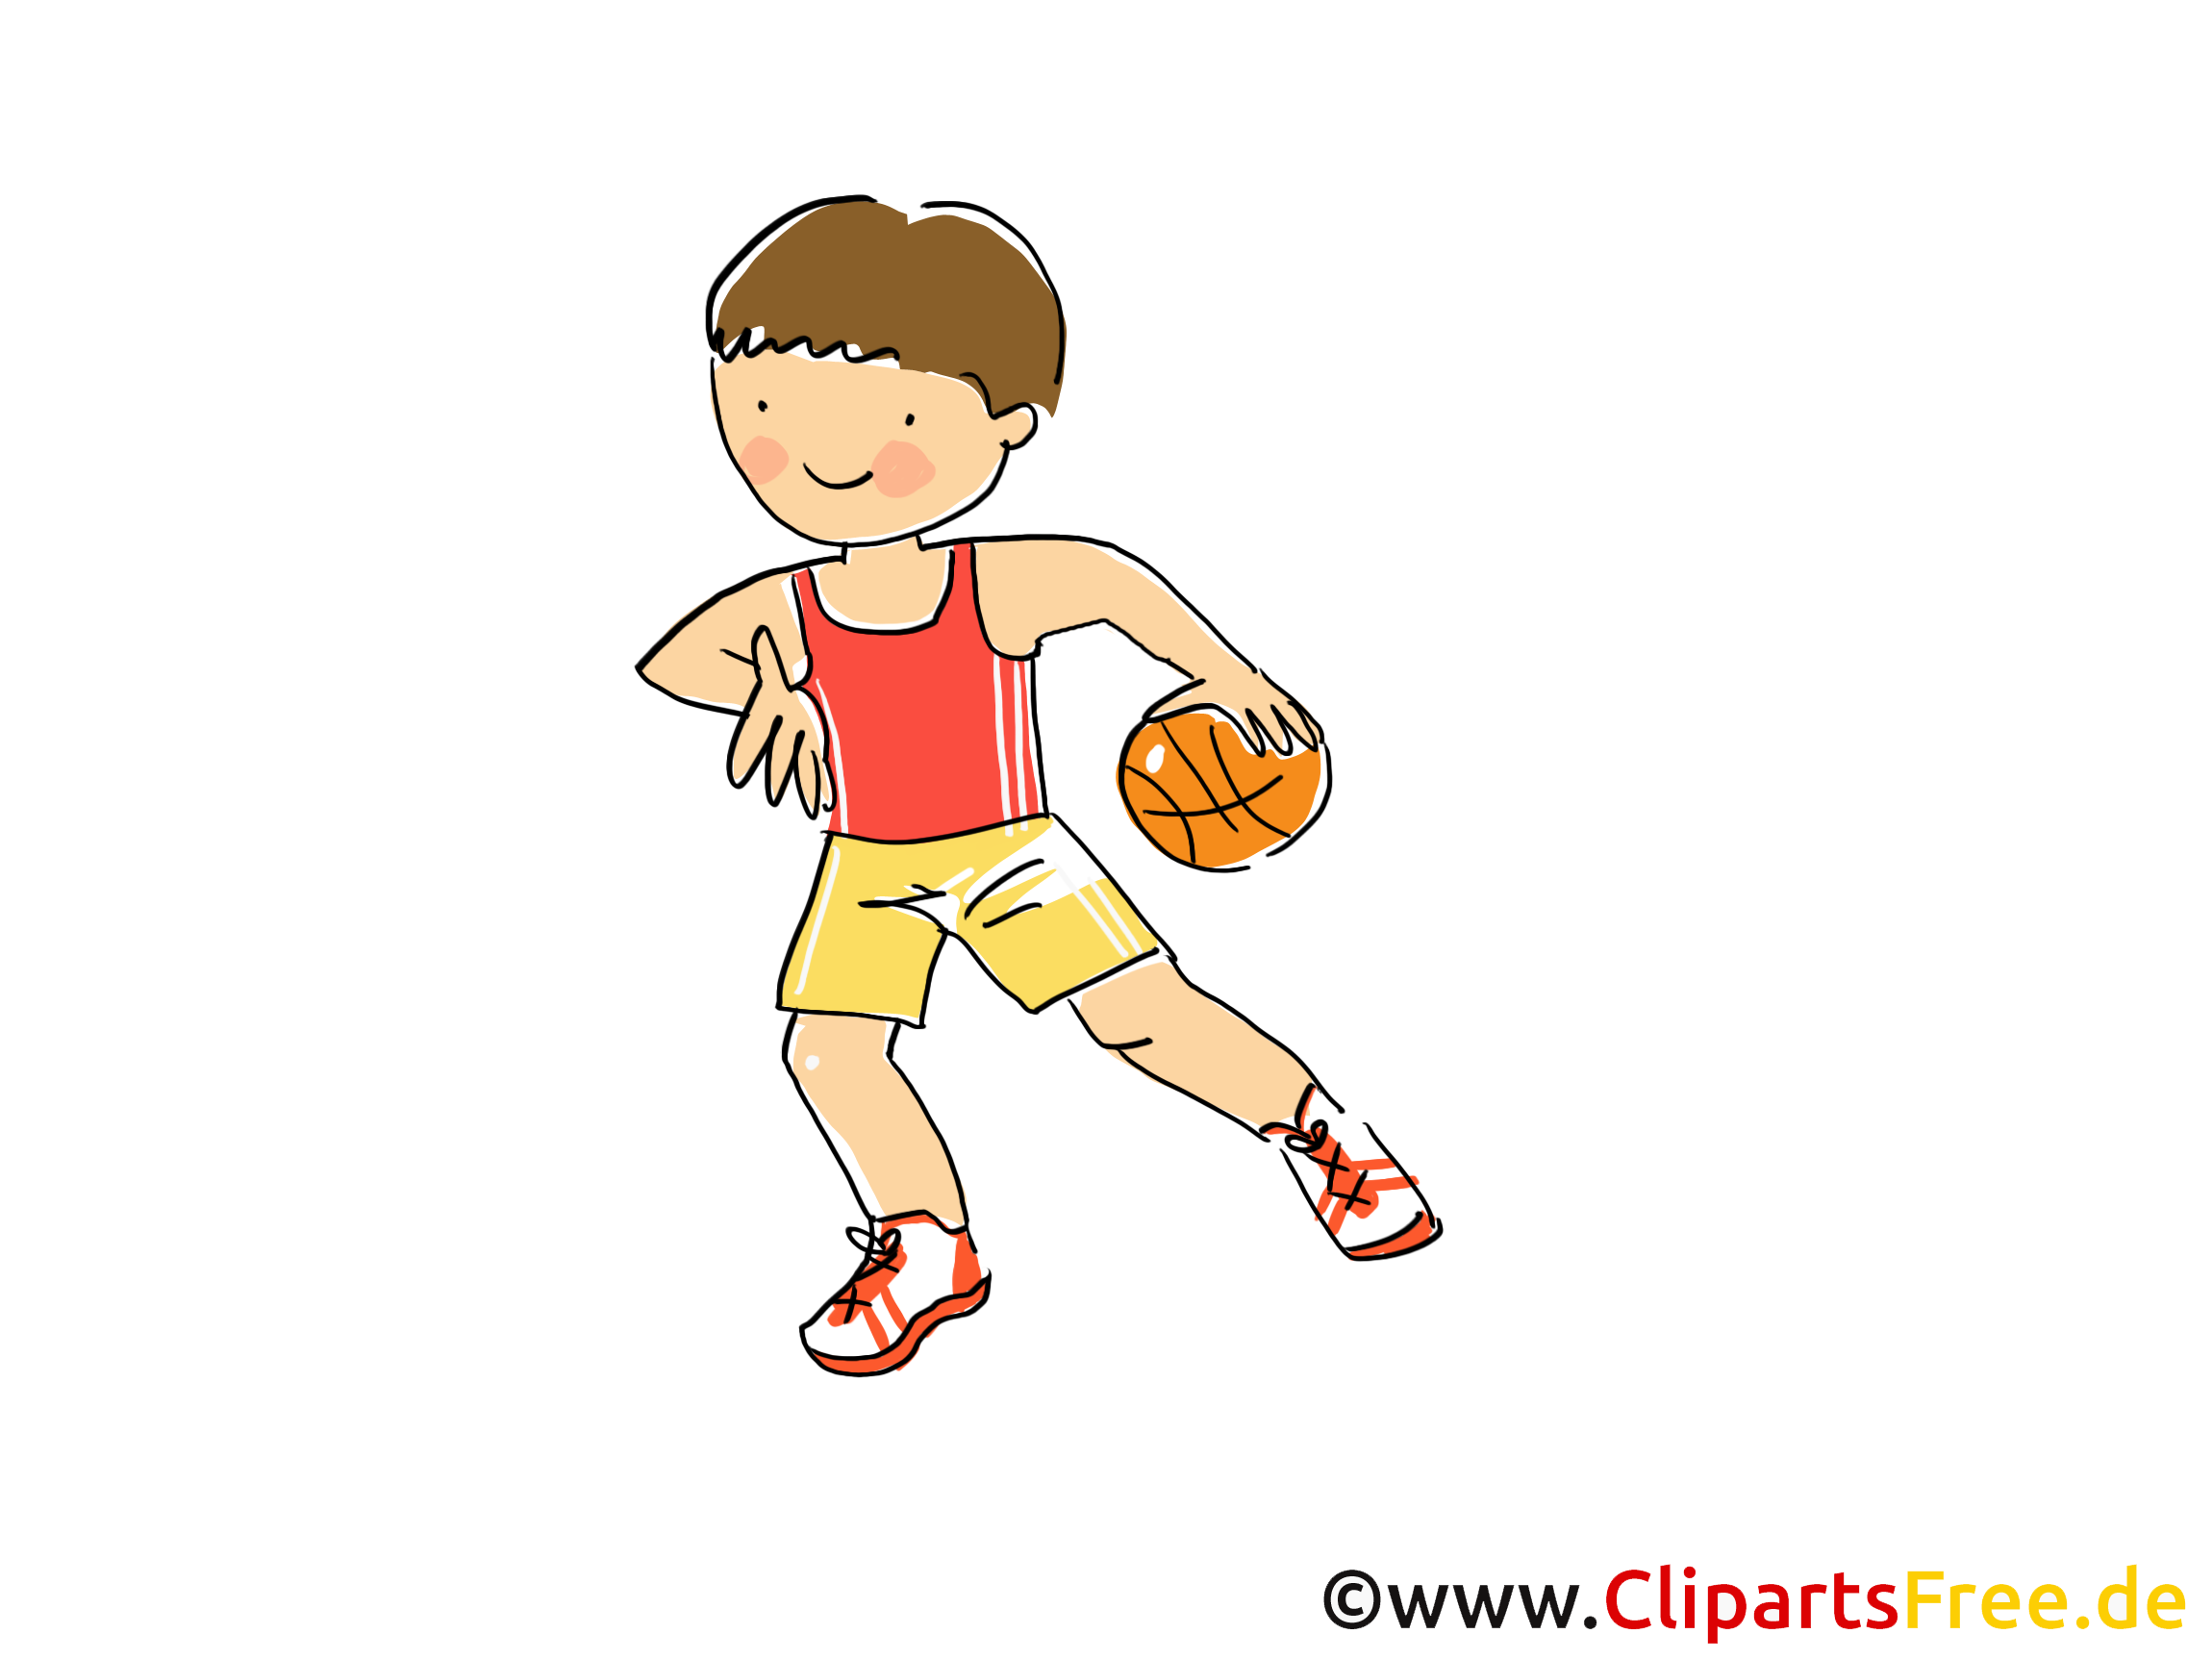 Handball Bild Clipart ic Cartoon Image gratis